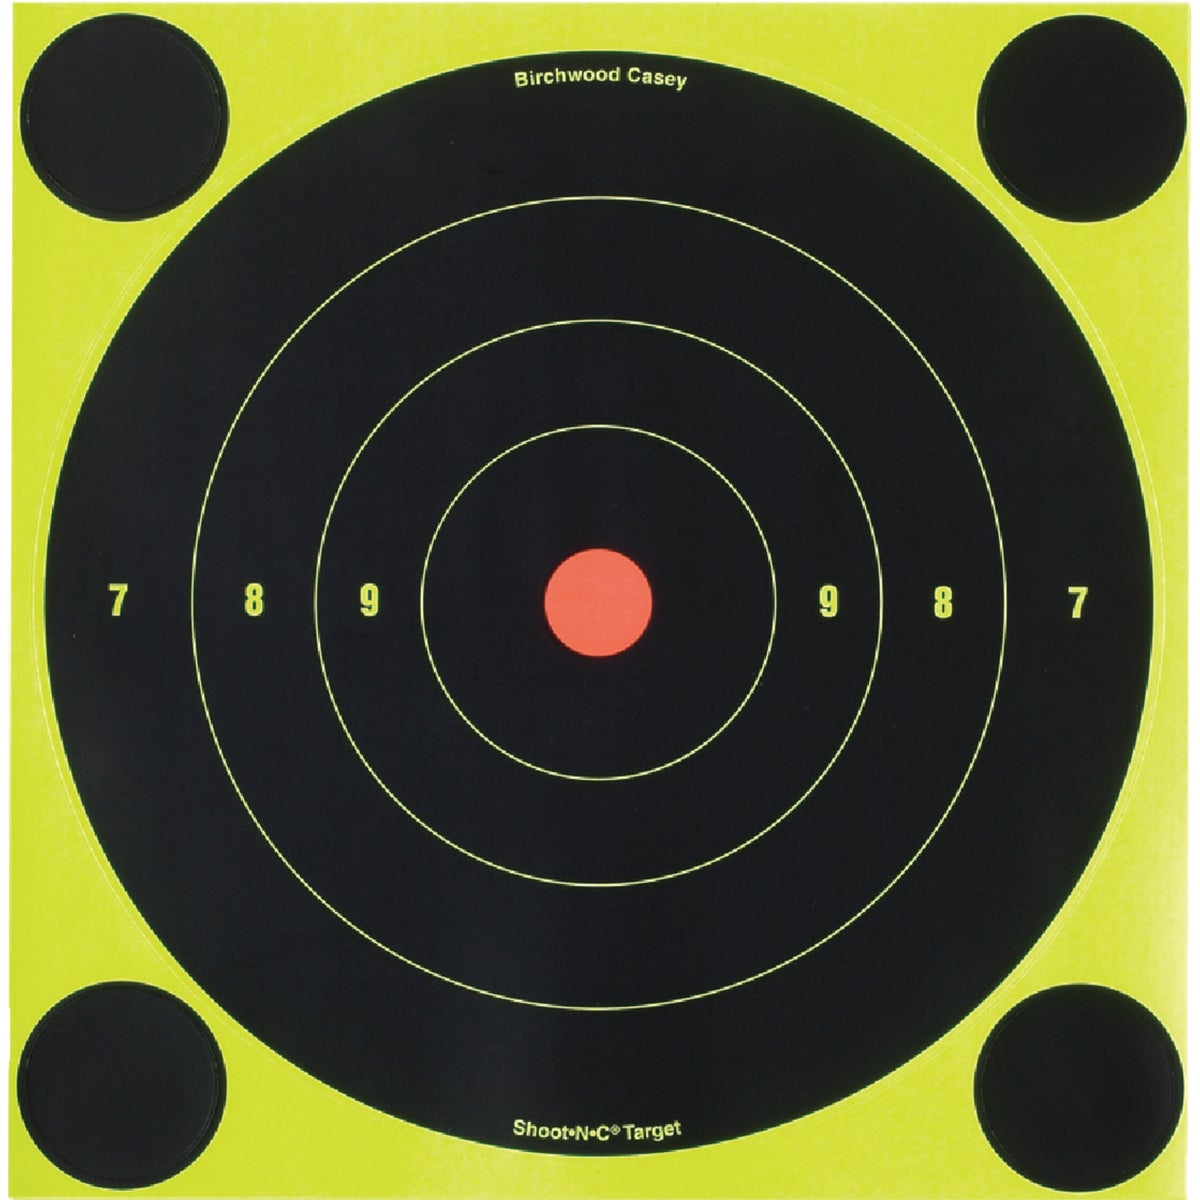 14X14 100YD TARGET - A14 by Big Rock Sports Llc